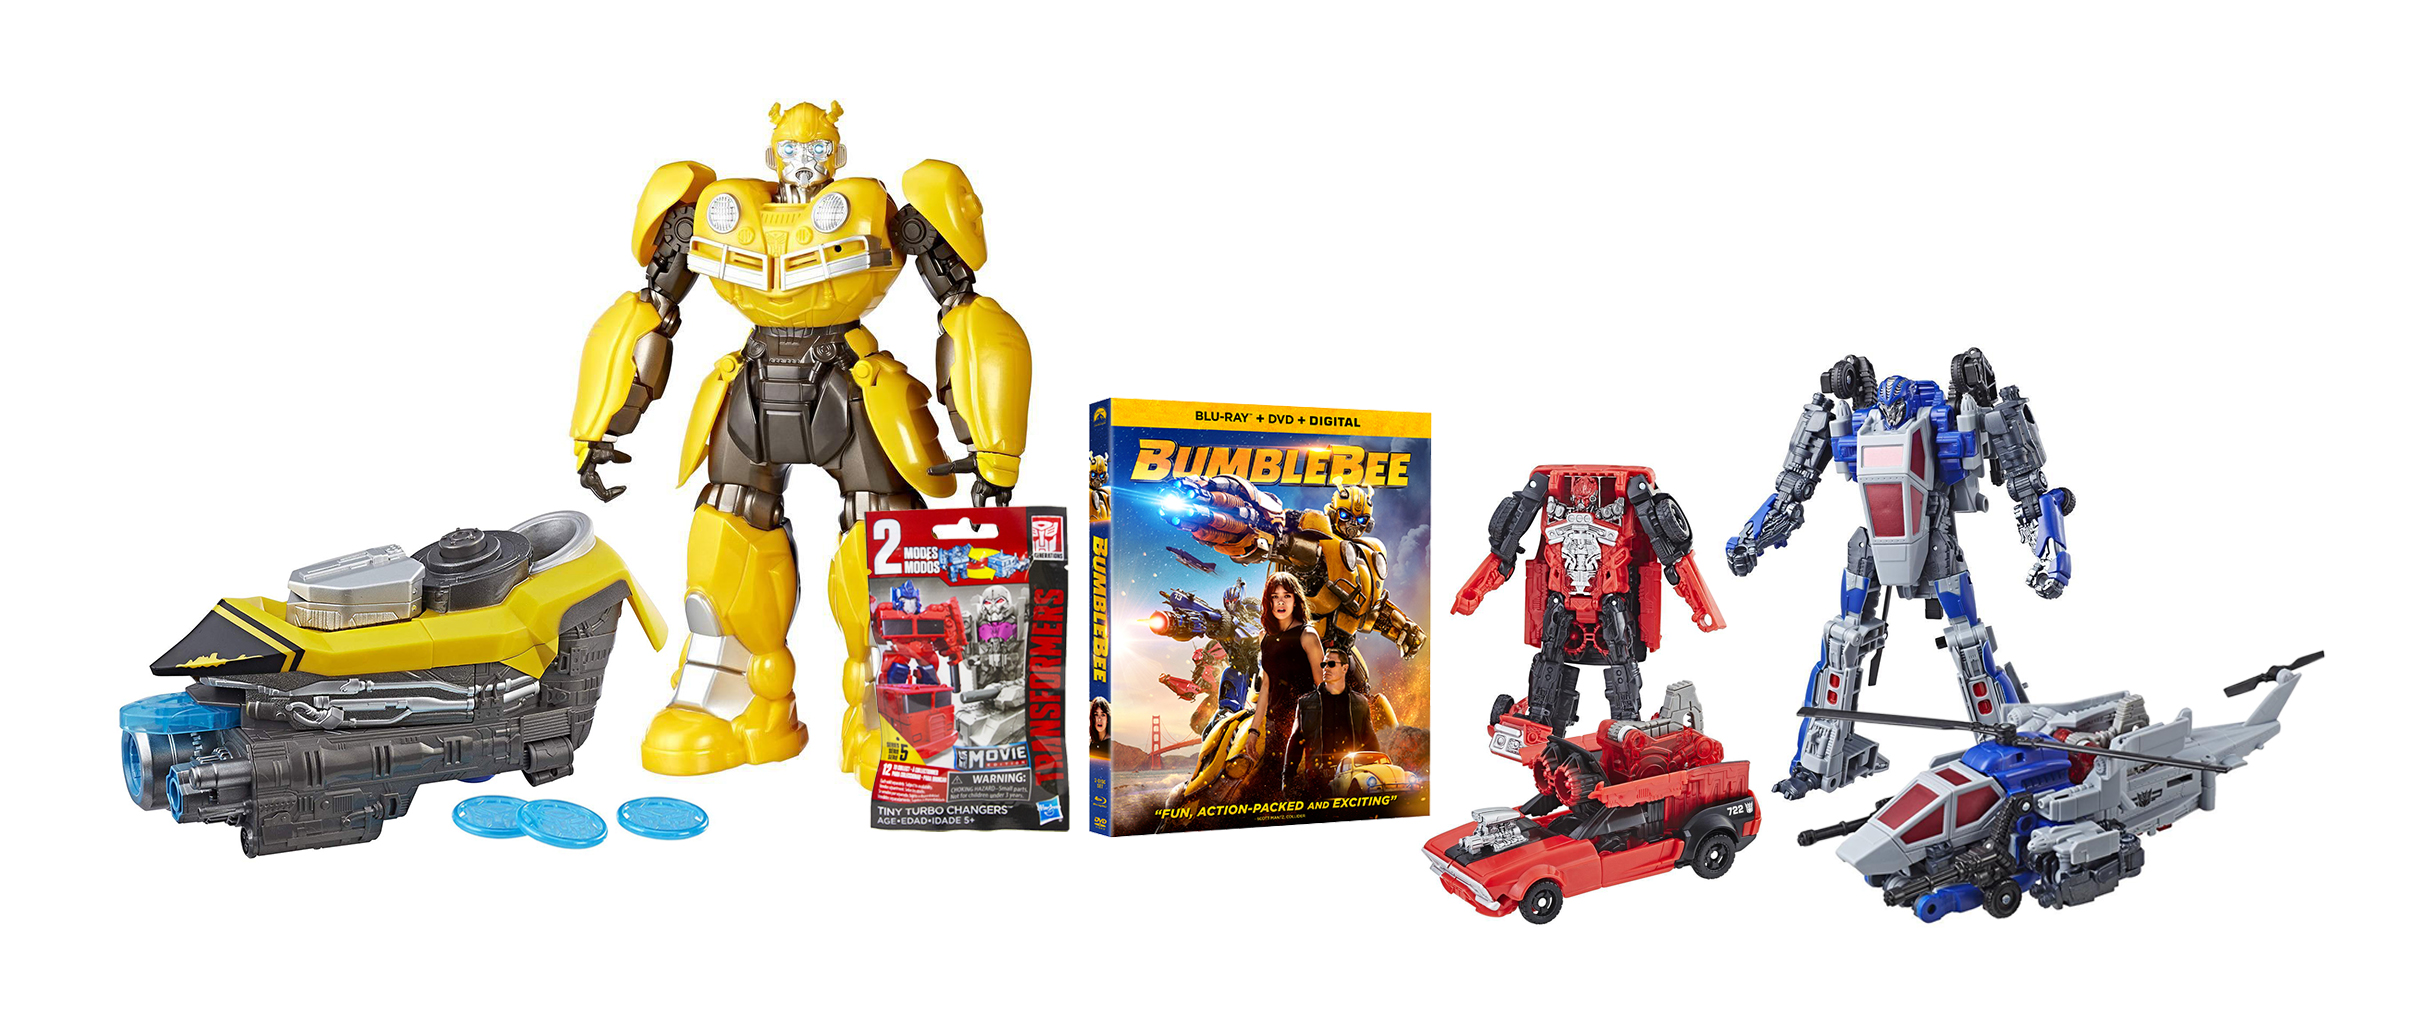 best gift ideas for Bumblebee fans